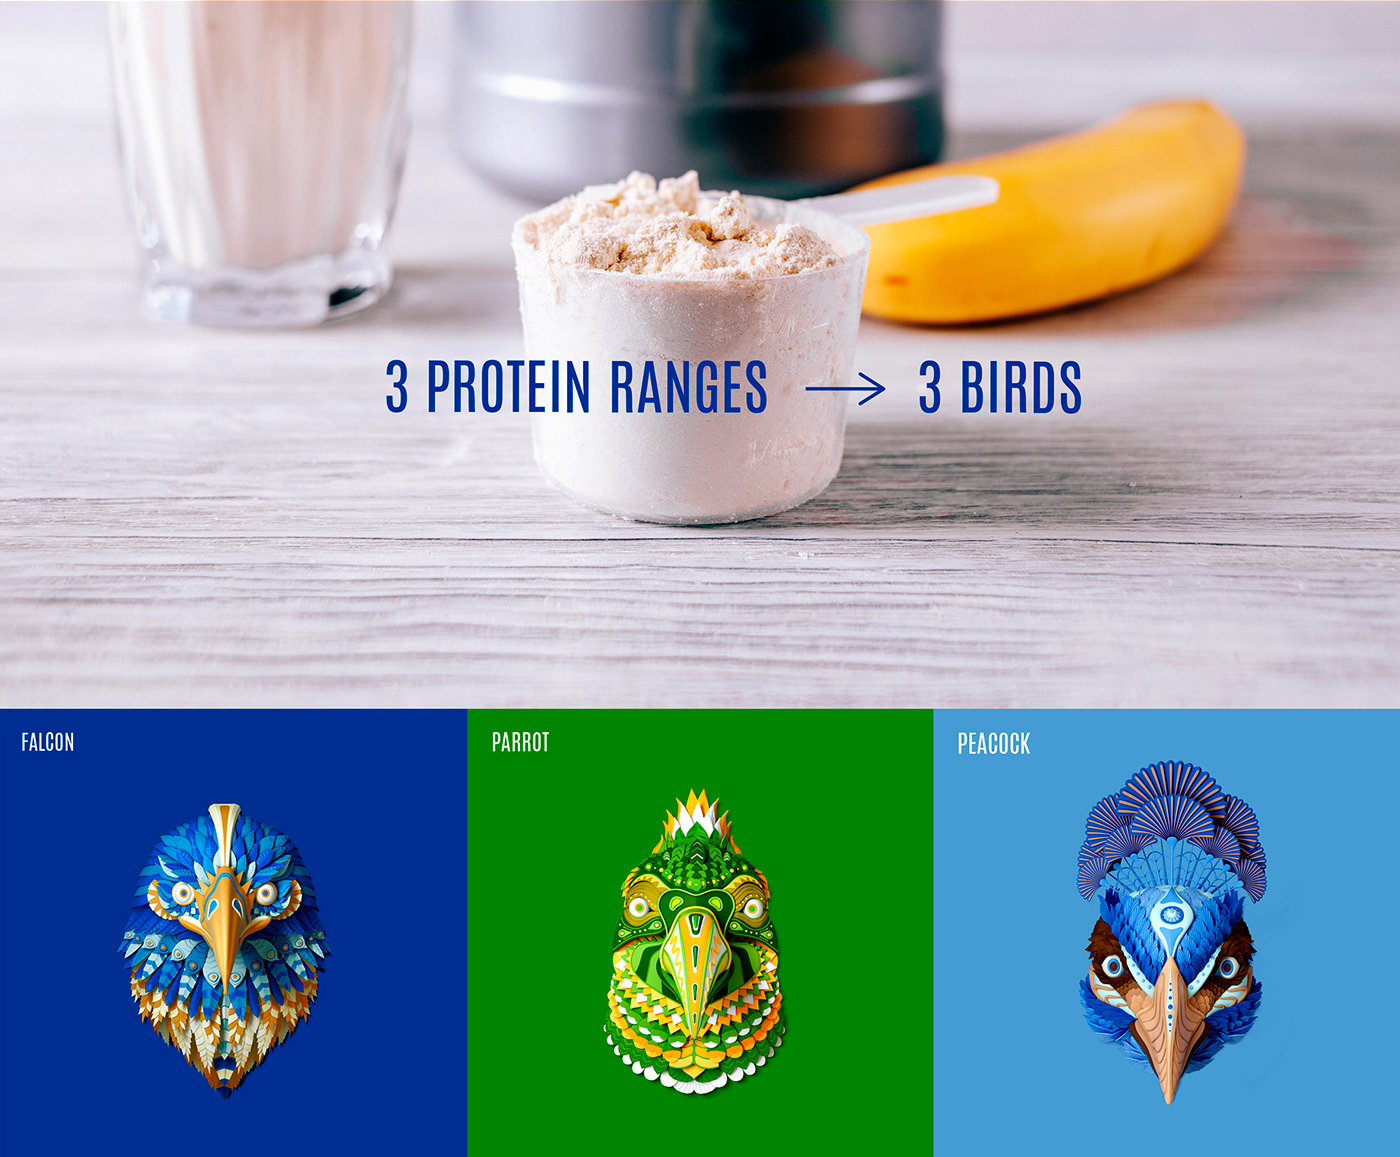 protein bird healthy fitness mexico natural vegetal